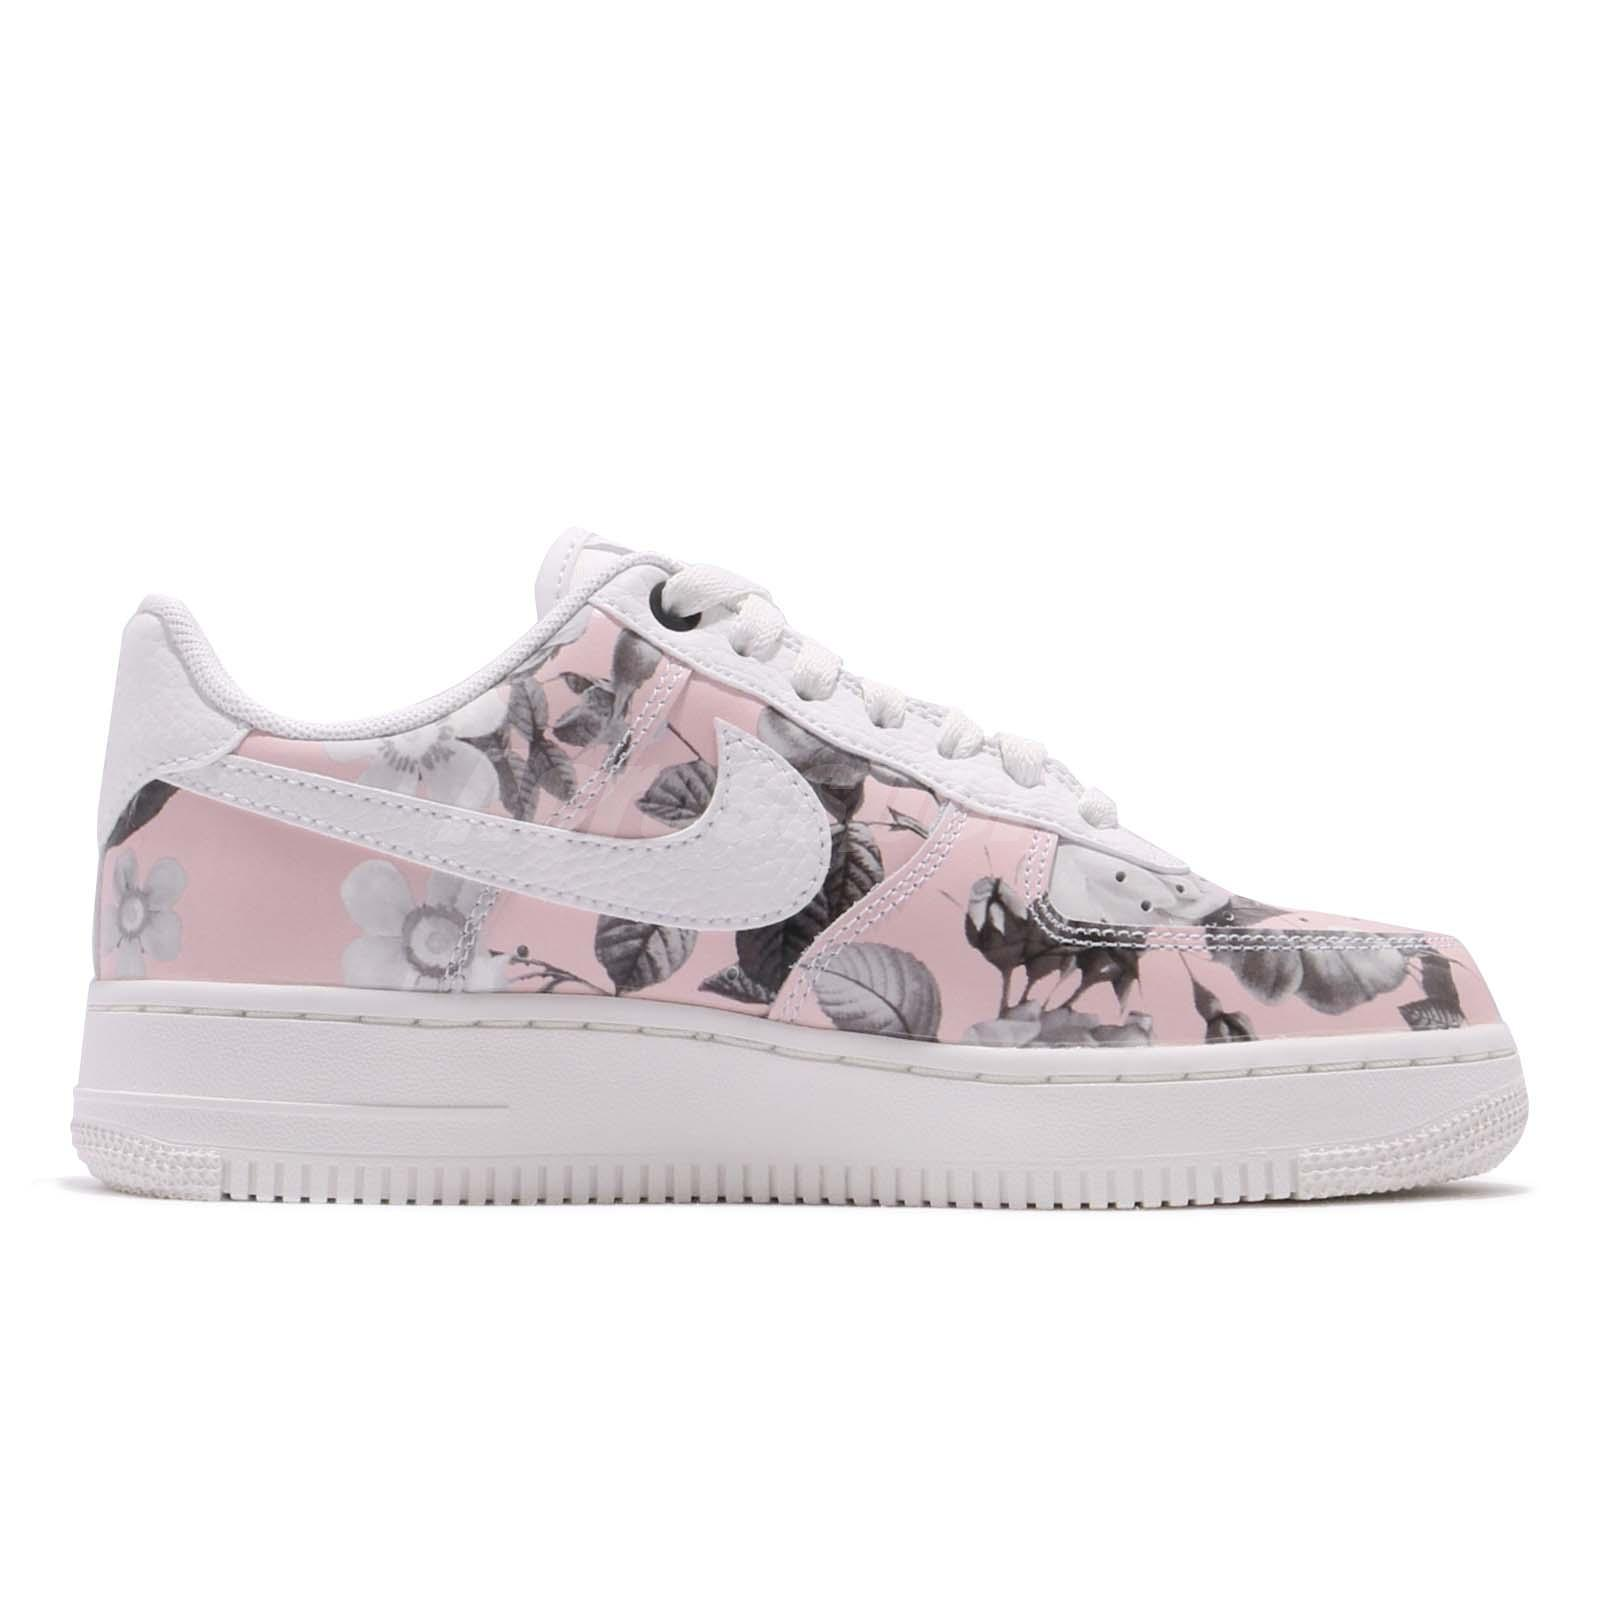 lowest price 94c9d af97e Nike Wmns Air Force 1 07 LXX Floral Rose White Pink Women Casual ...